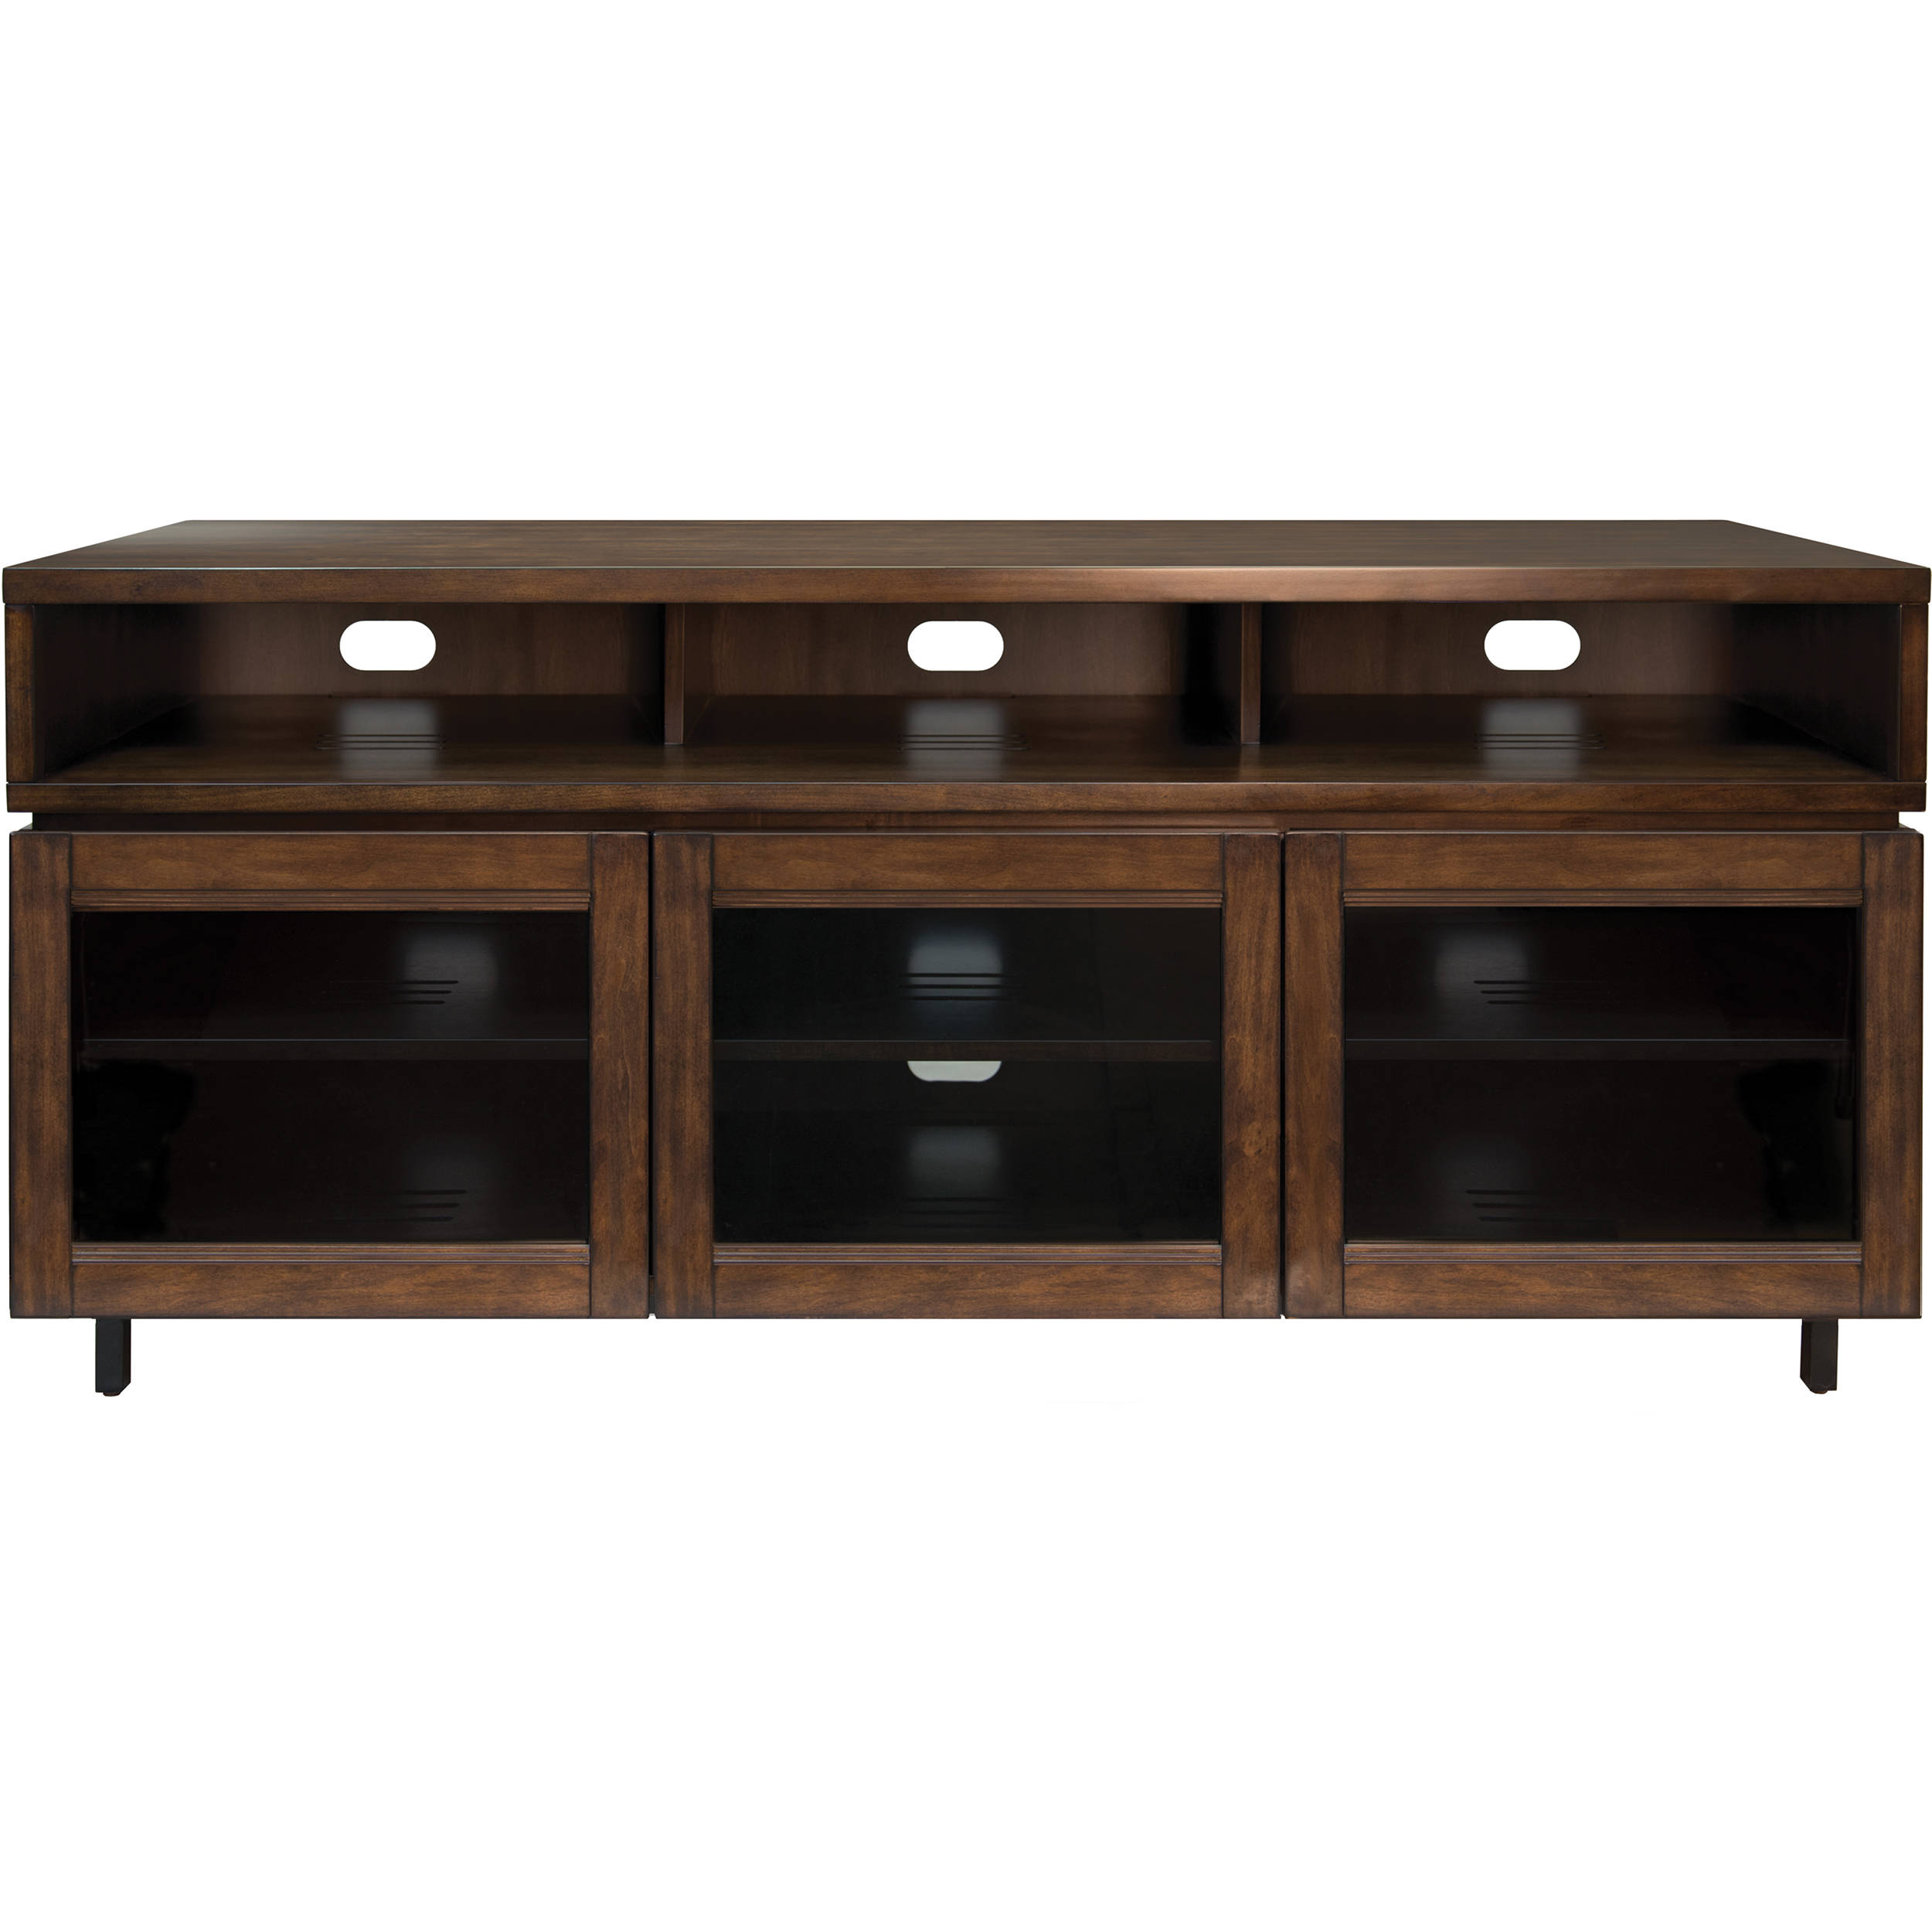 home house products item parker cupboard number bella collection entertainment with center furniture bel doors and